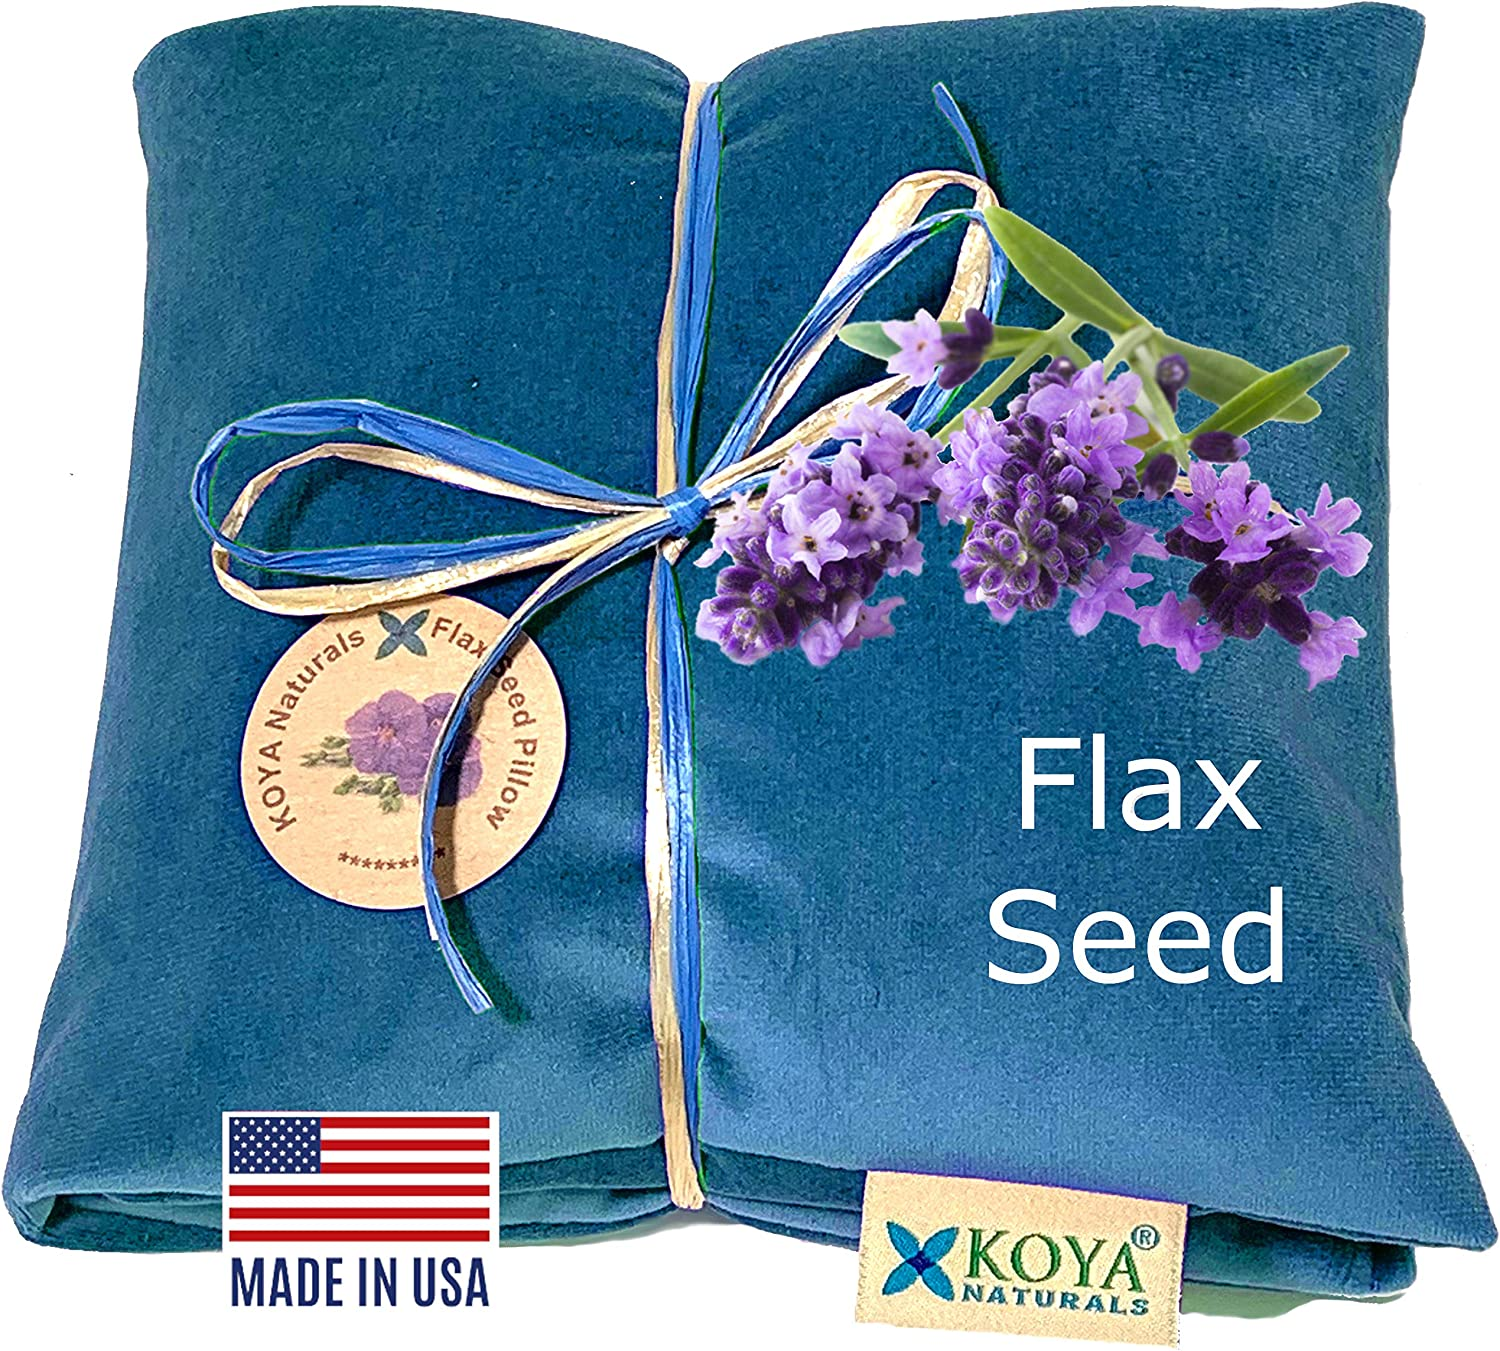 KOYA Naturals Flax Seed Pillow with Lavender – Microwavable Heating Pad for Neck, Muscle, Joint, Stomach Pain, Menstrual Cramp - Made in USA (Turquoise, Scented)